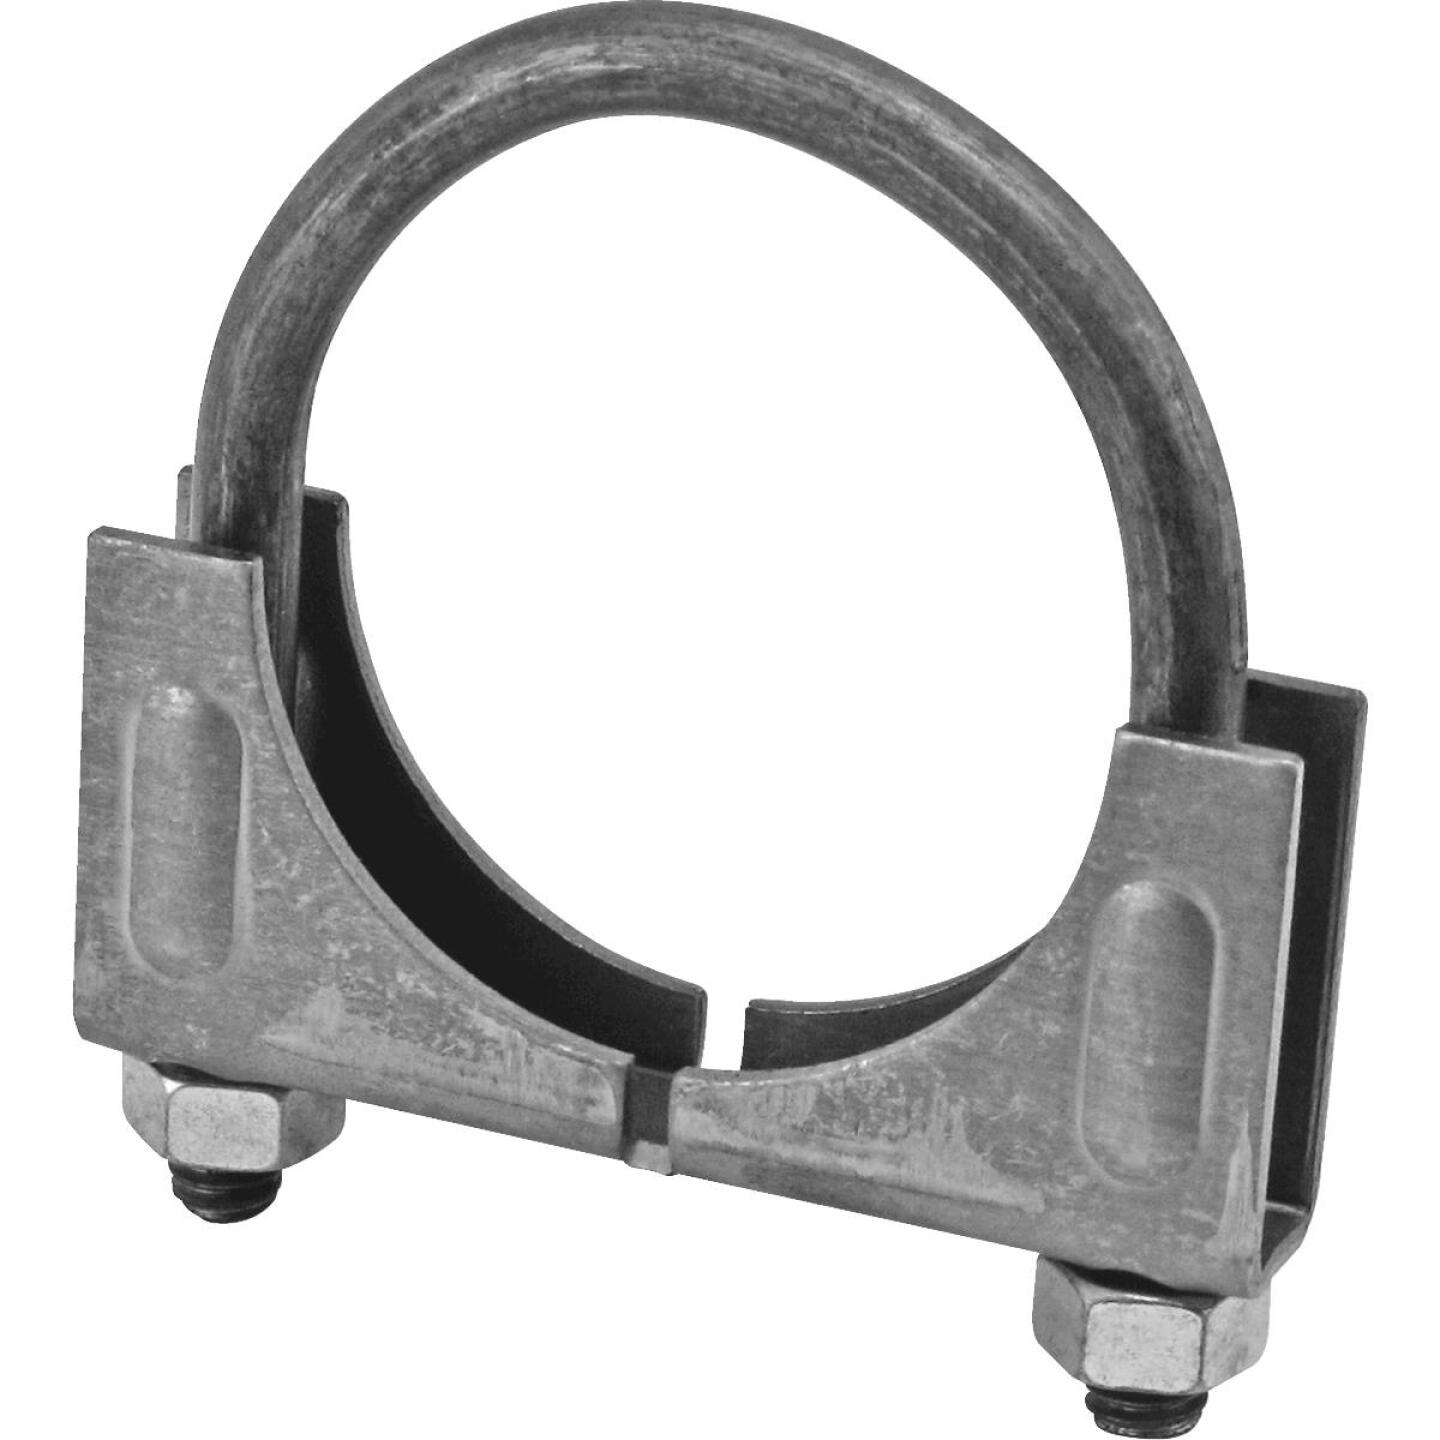 "Victor Saddle 2"" 13-gauge Steel Muffler Clamp Image 1"